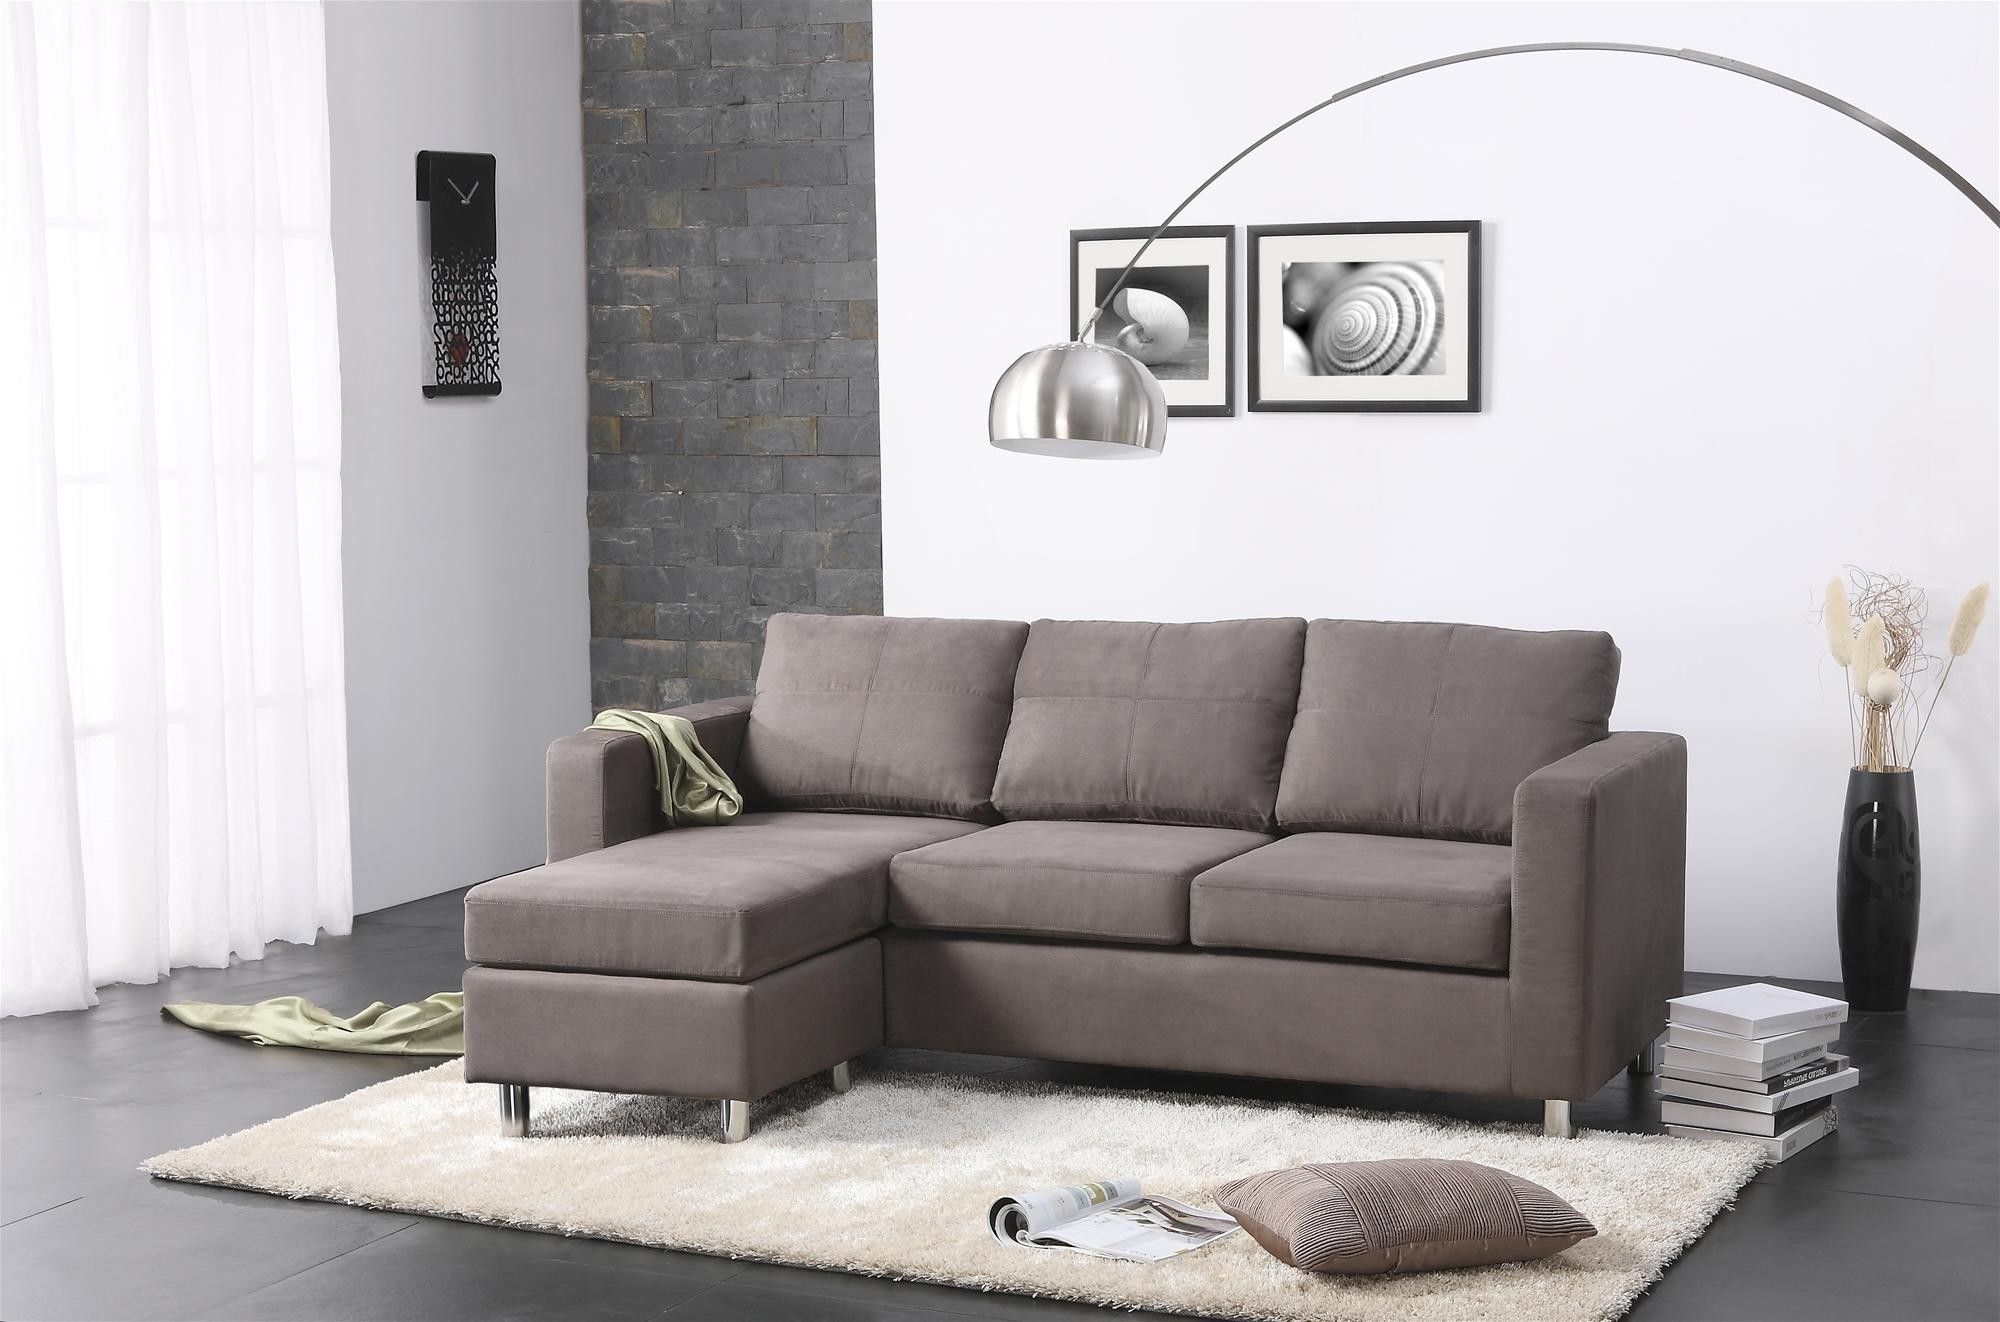 Amazing Modern Small Spaces Living Room Decors With Grey Sectional Regarding Widely Used Modern Sectional Sofas For Small Spaces (View 1 of 20)